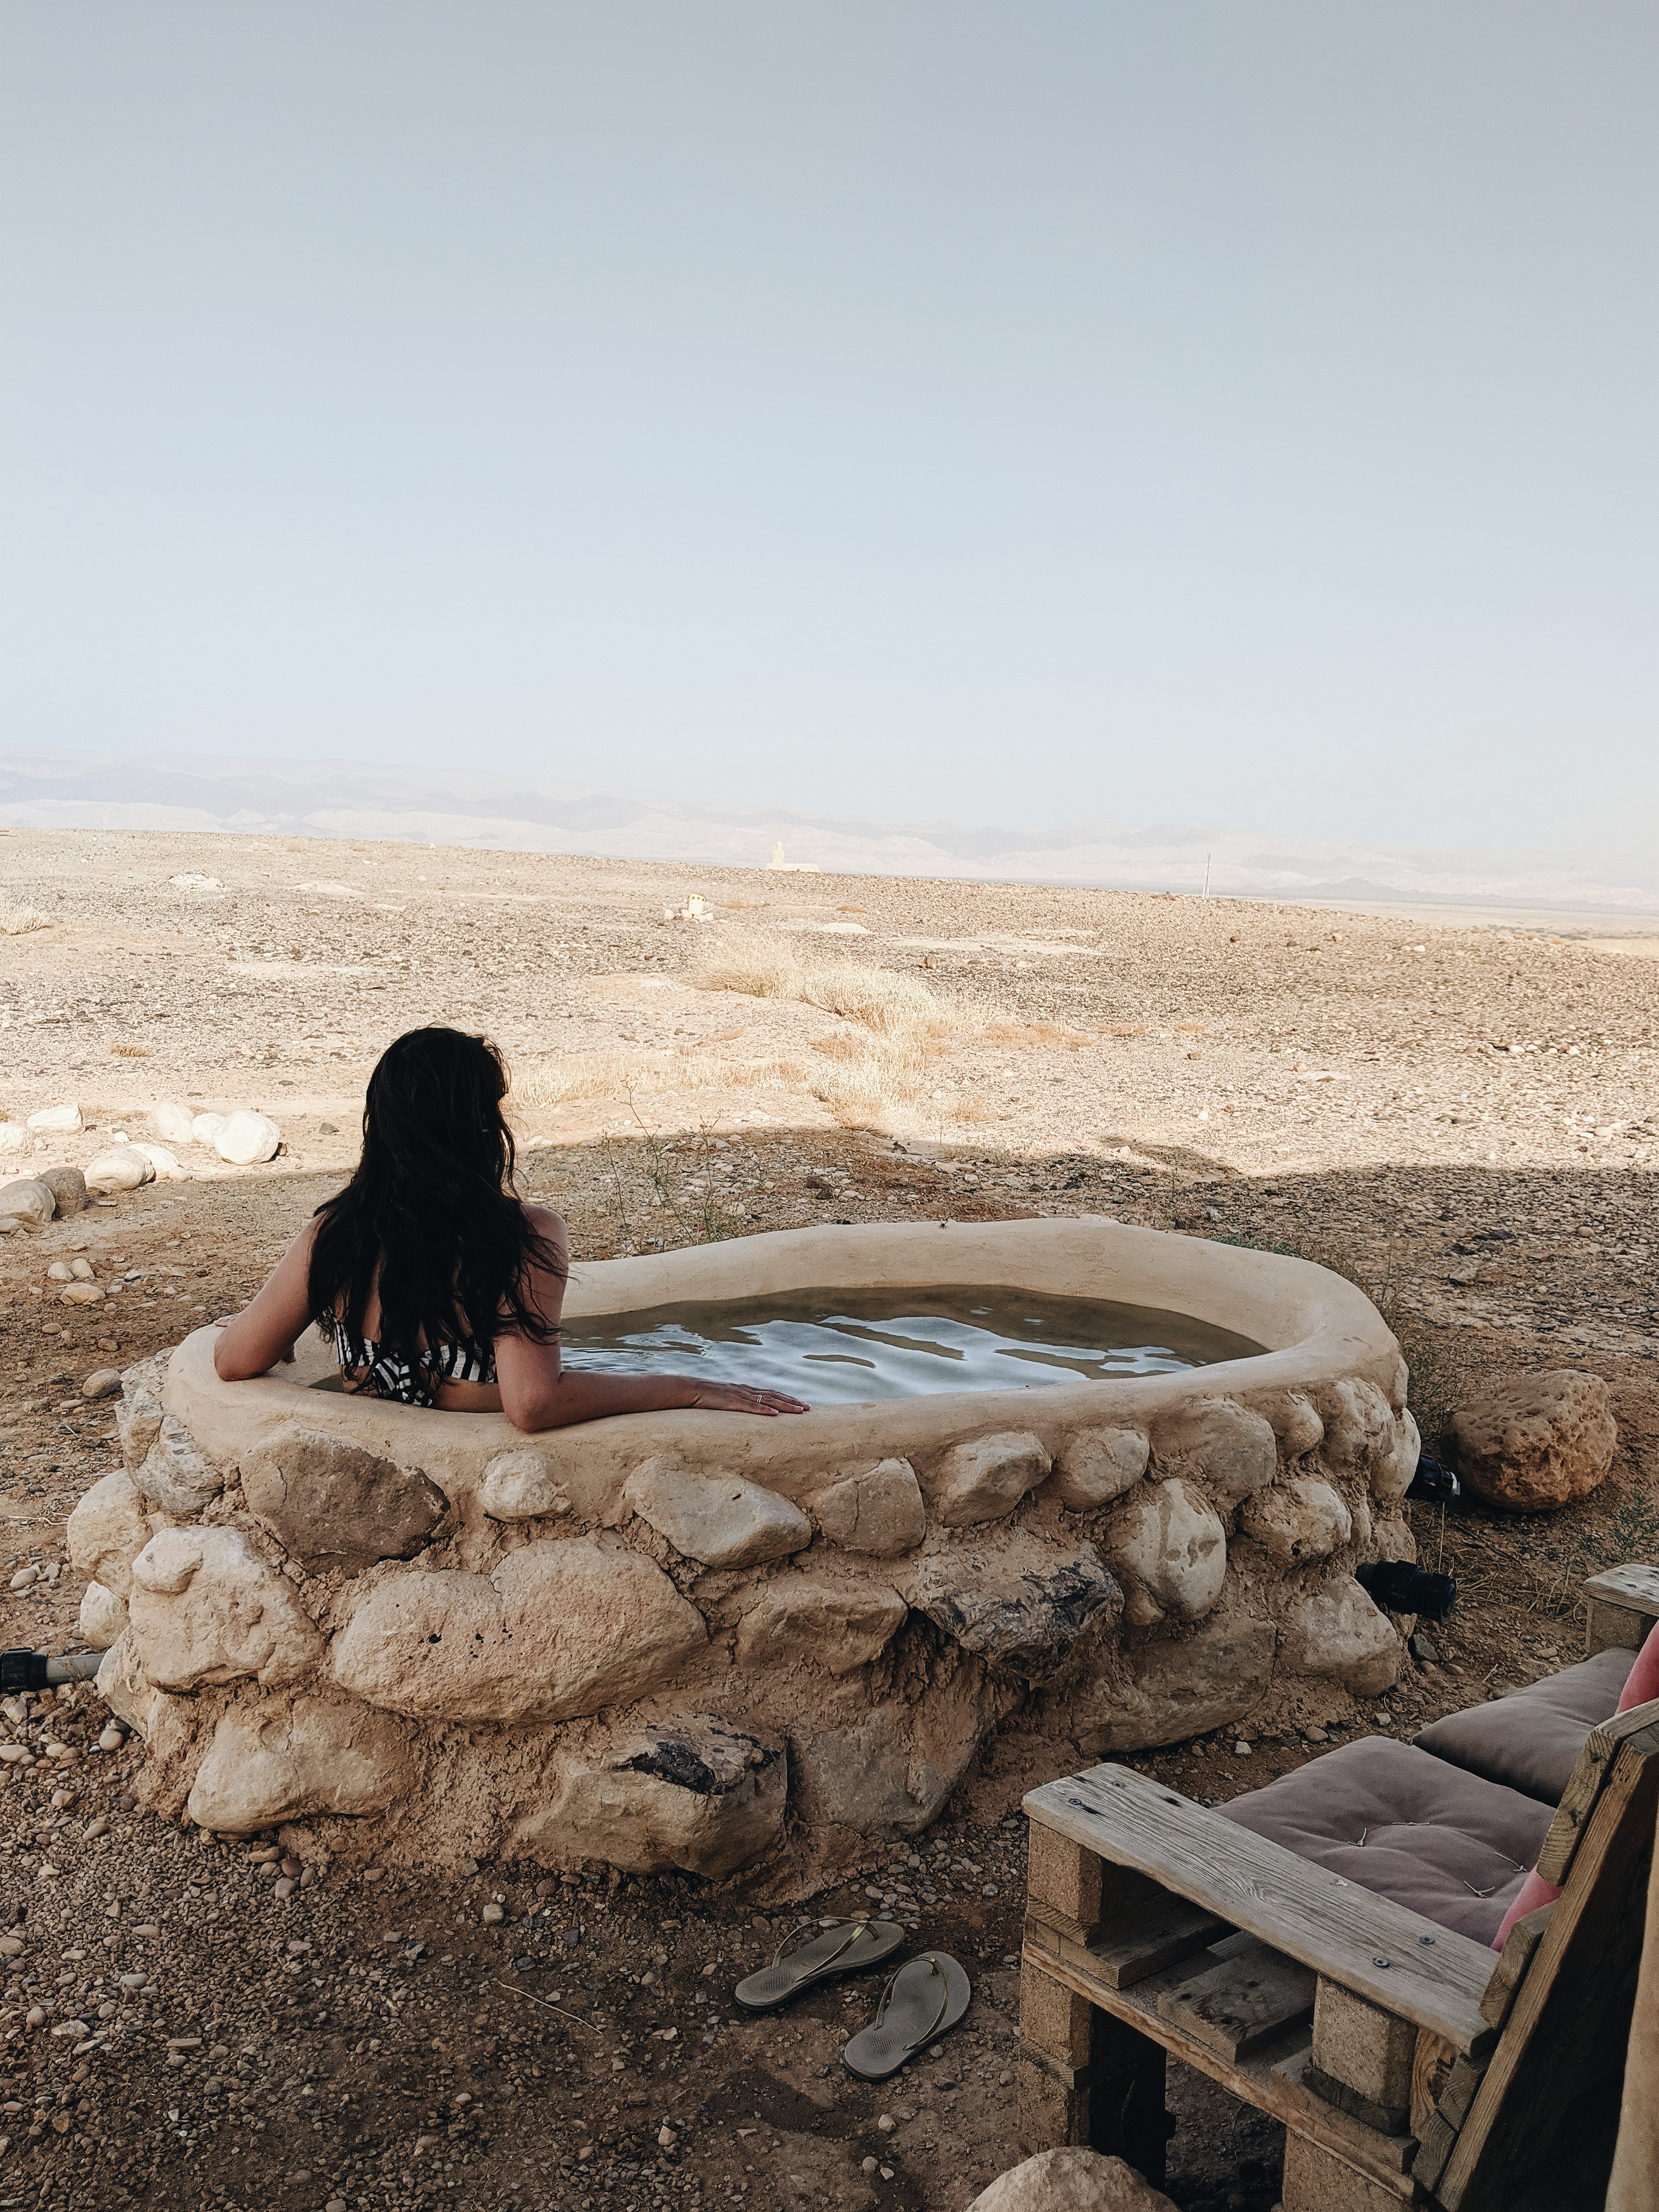 cabins in the desert israel